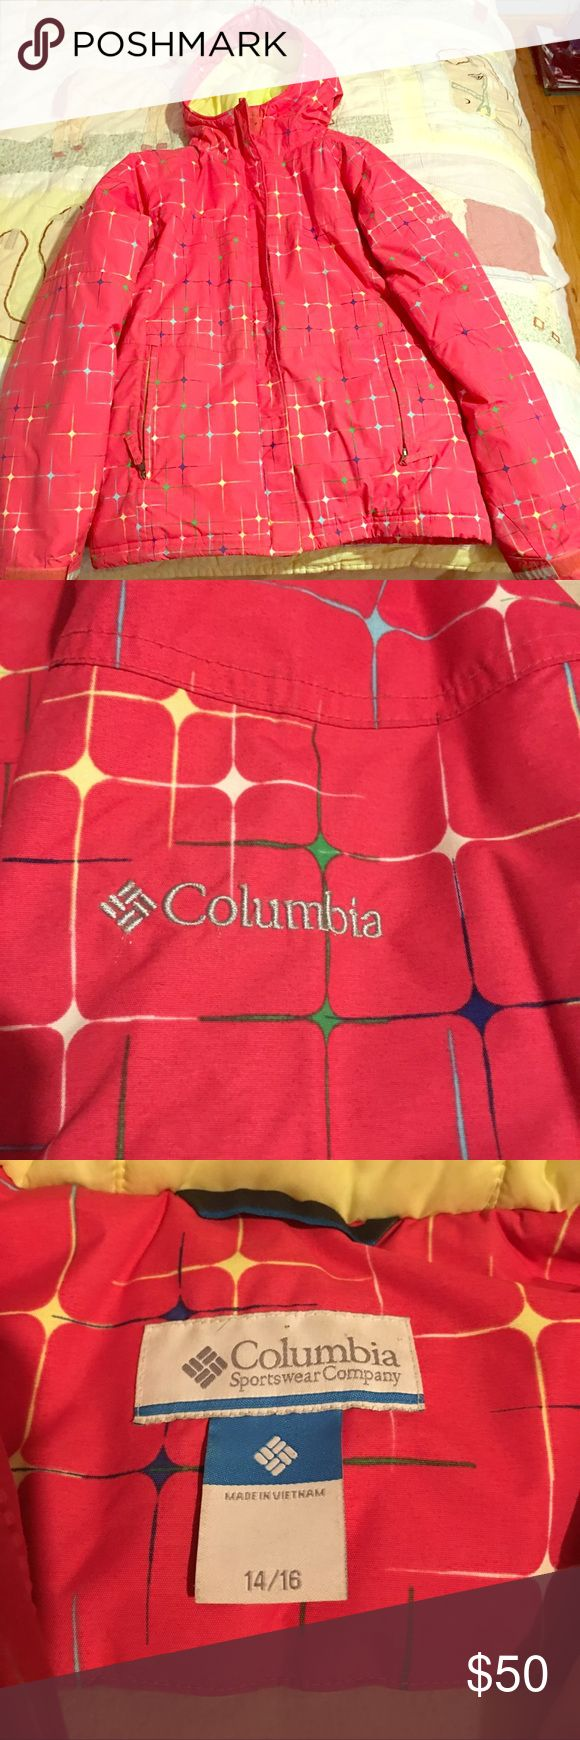 Girls Columbia Coat Worn but, excellent condition. Good as new! Columbia Jackets & Coats